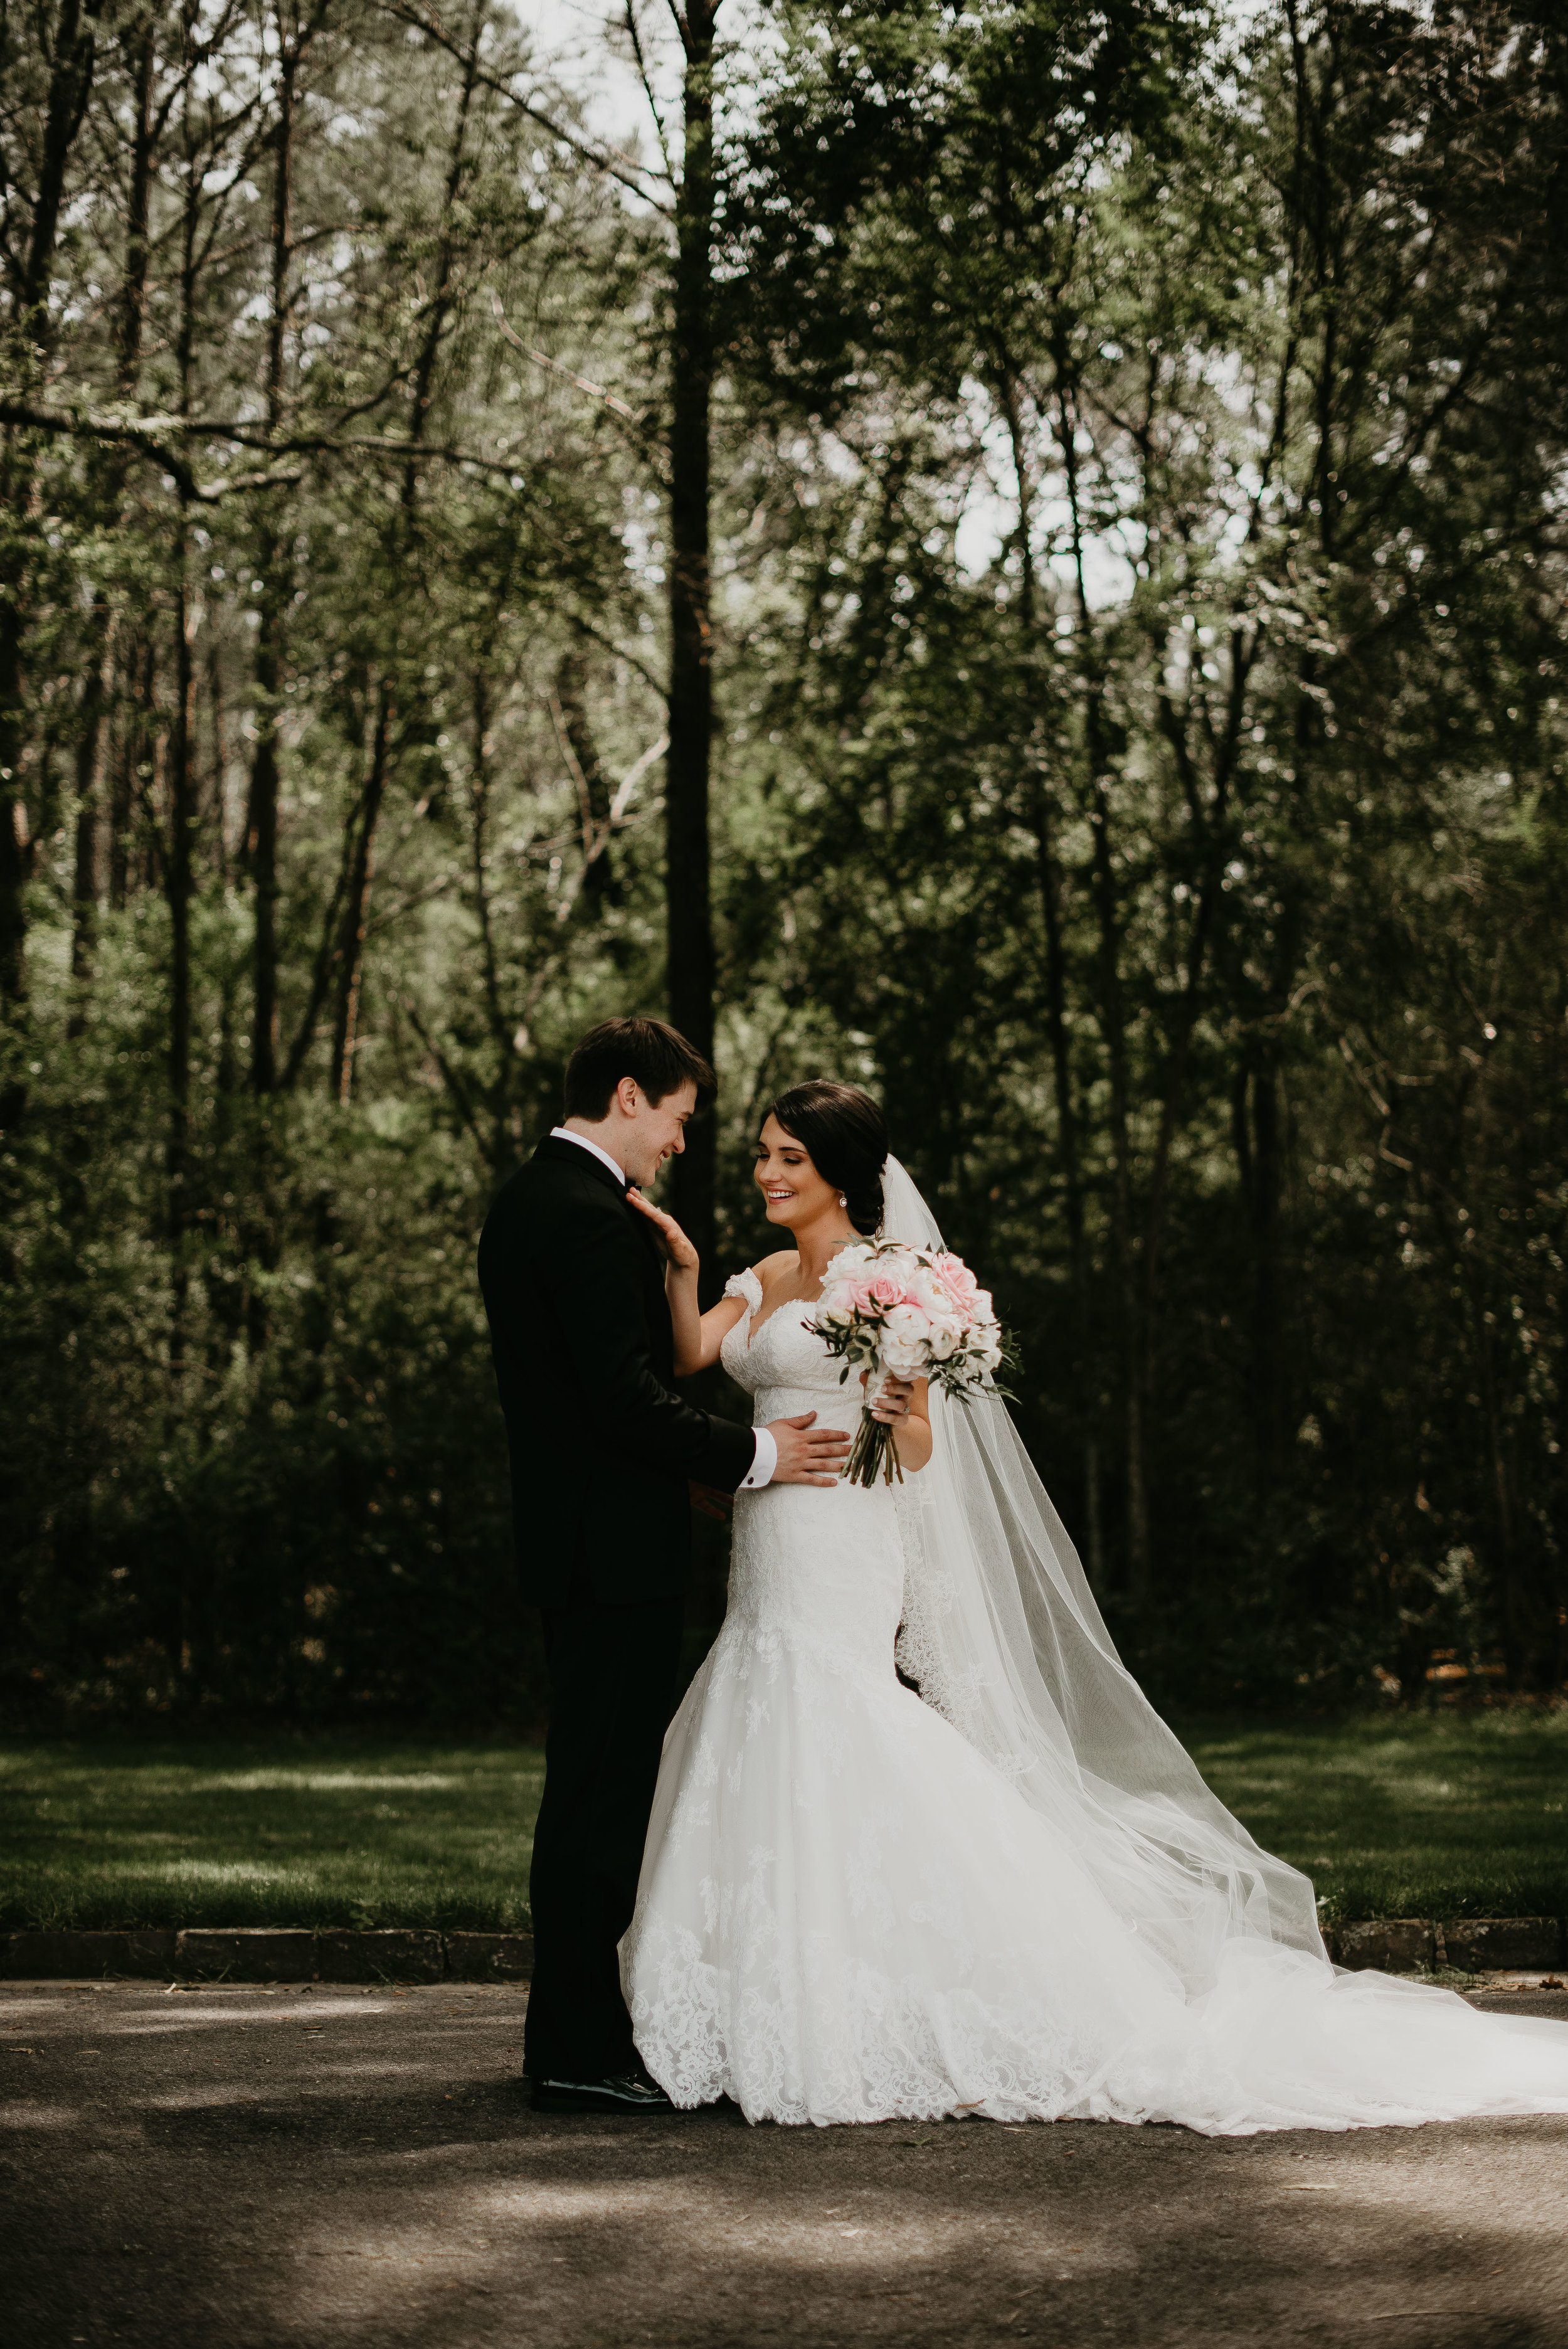 Bride and groom first look reactions at Berry College Wedding